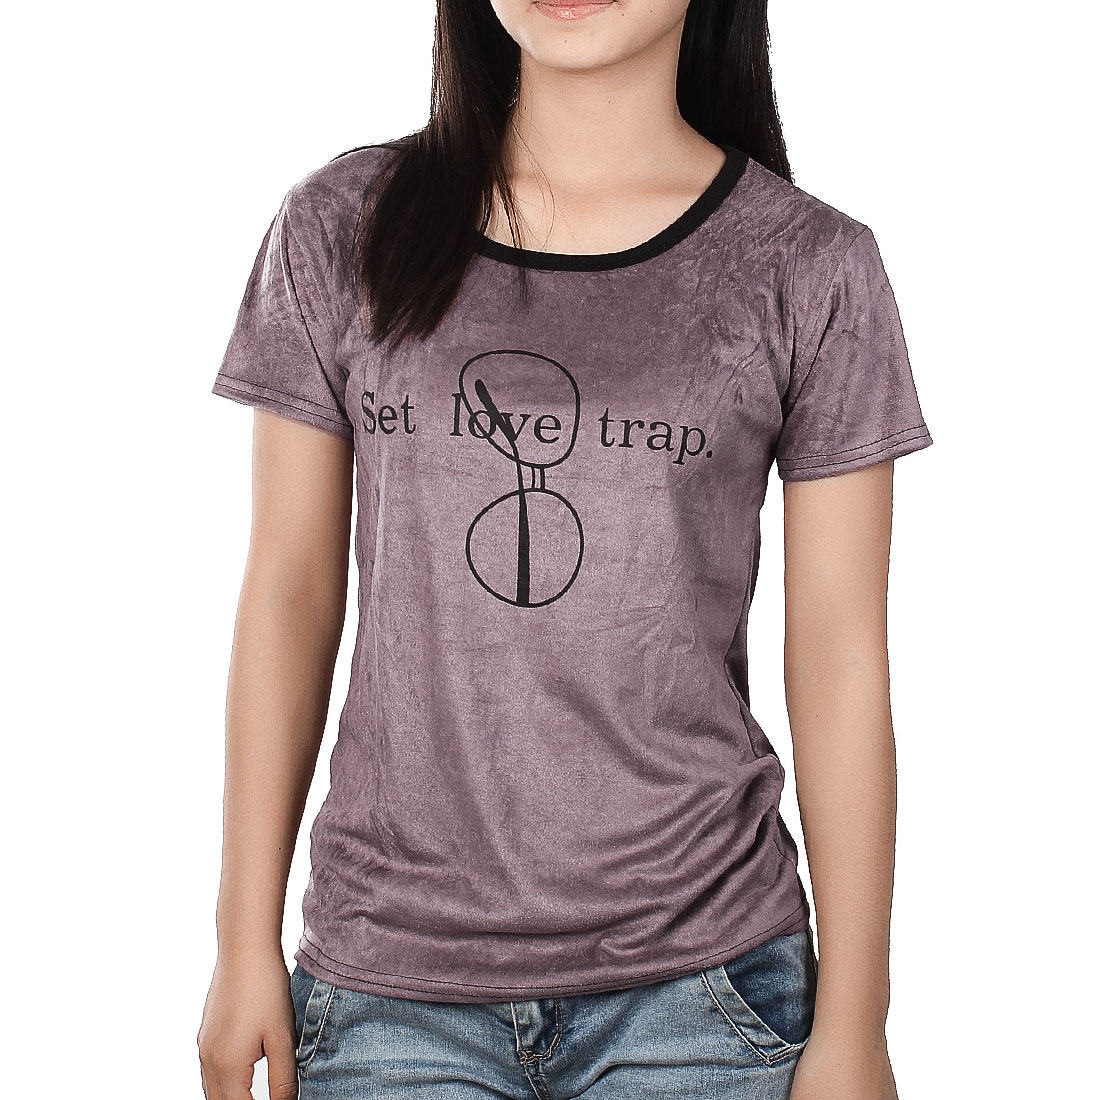 Black Round Neck Short Sleeve Purple T-Shirt XS for Ladies